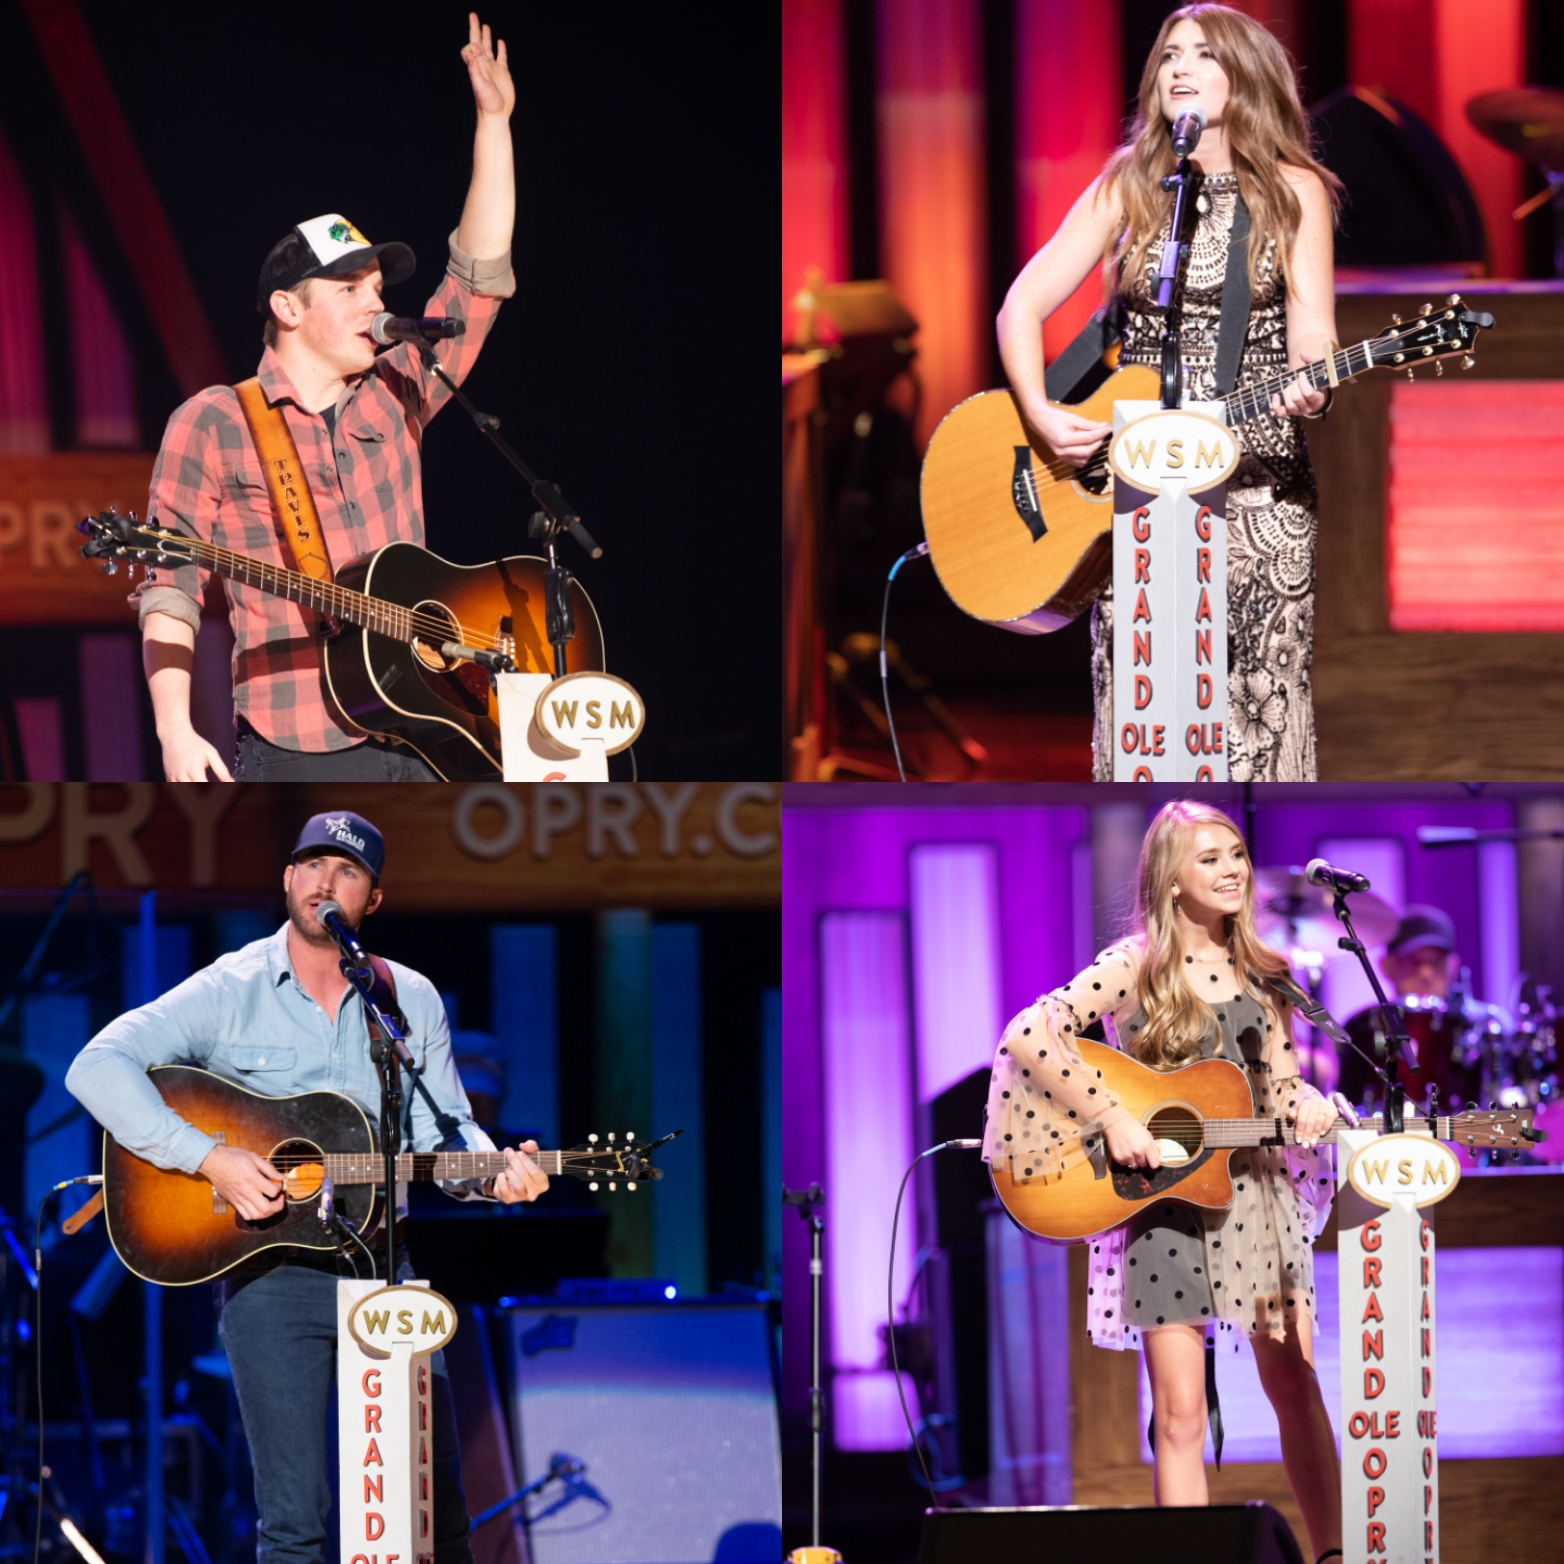 Grand Ole Opry Adds Opry Plaza Party On Tues June 4 To Cma Fest